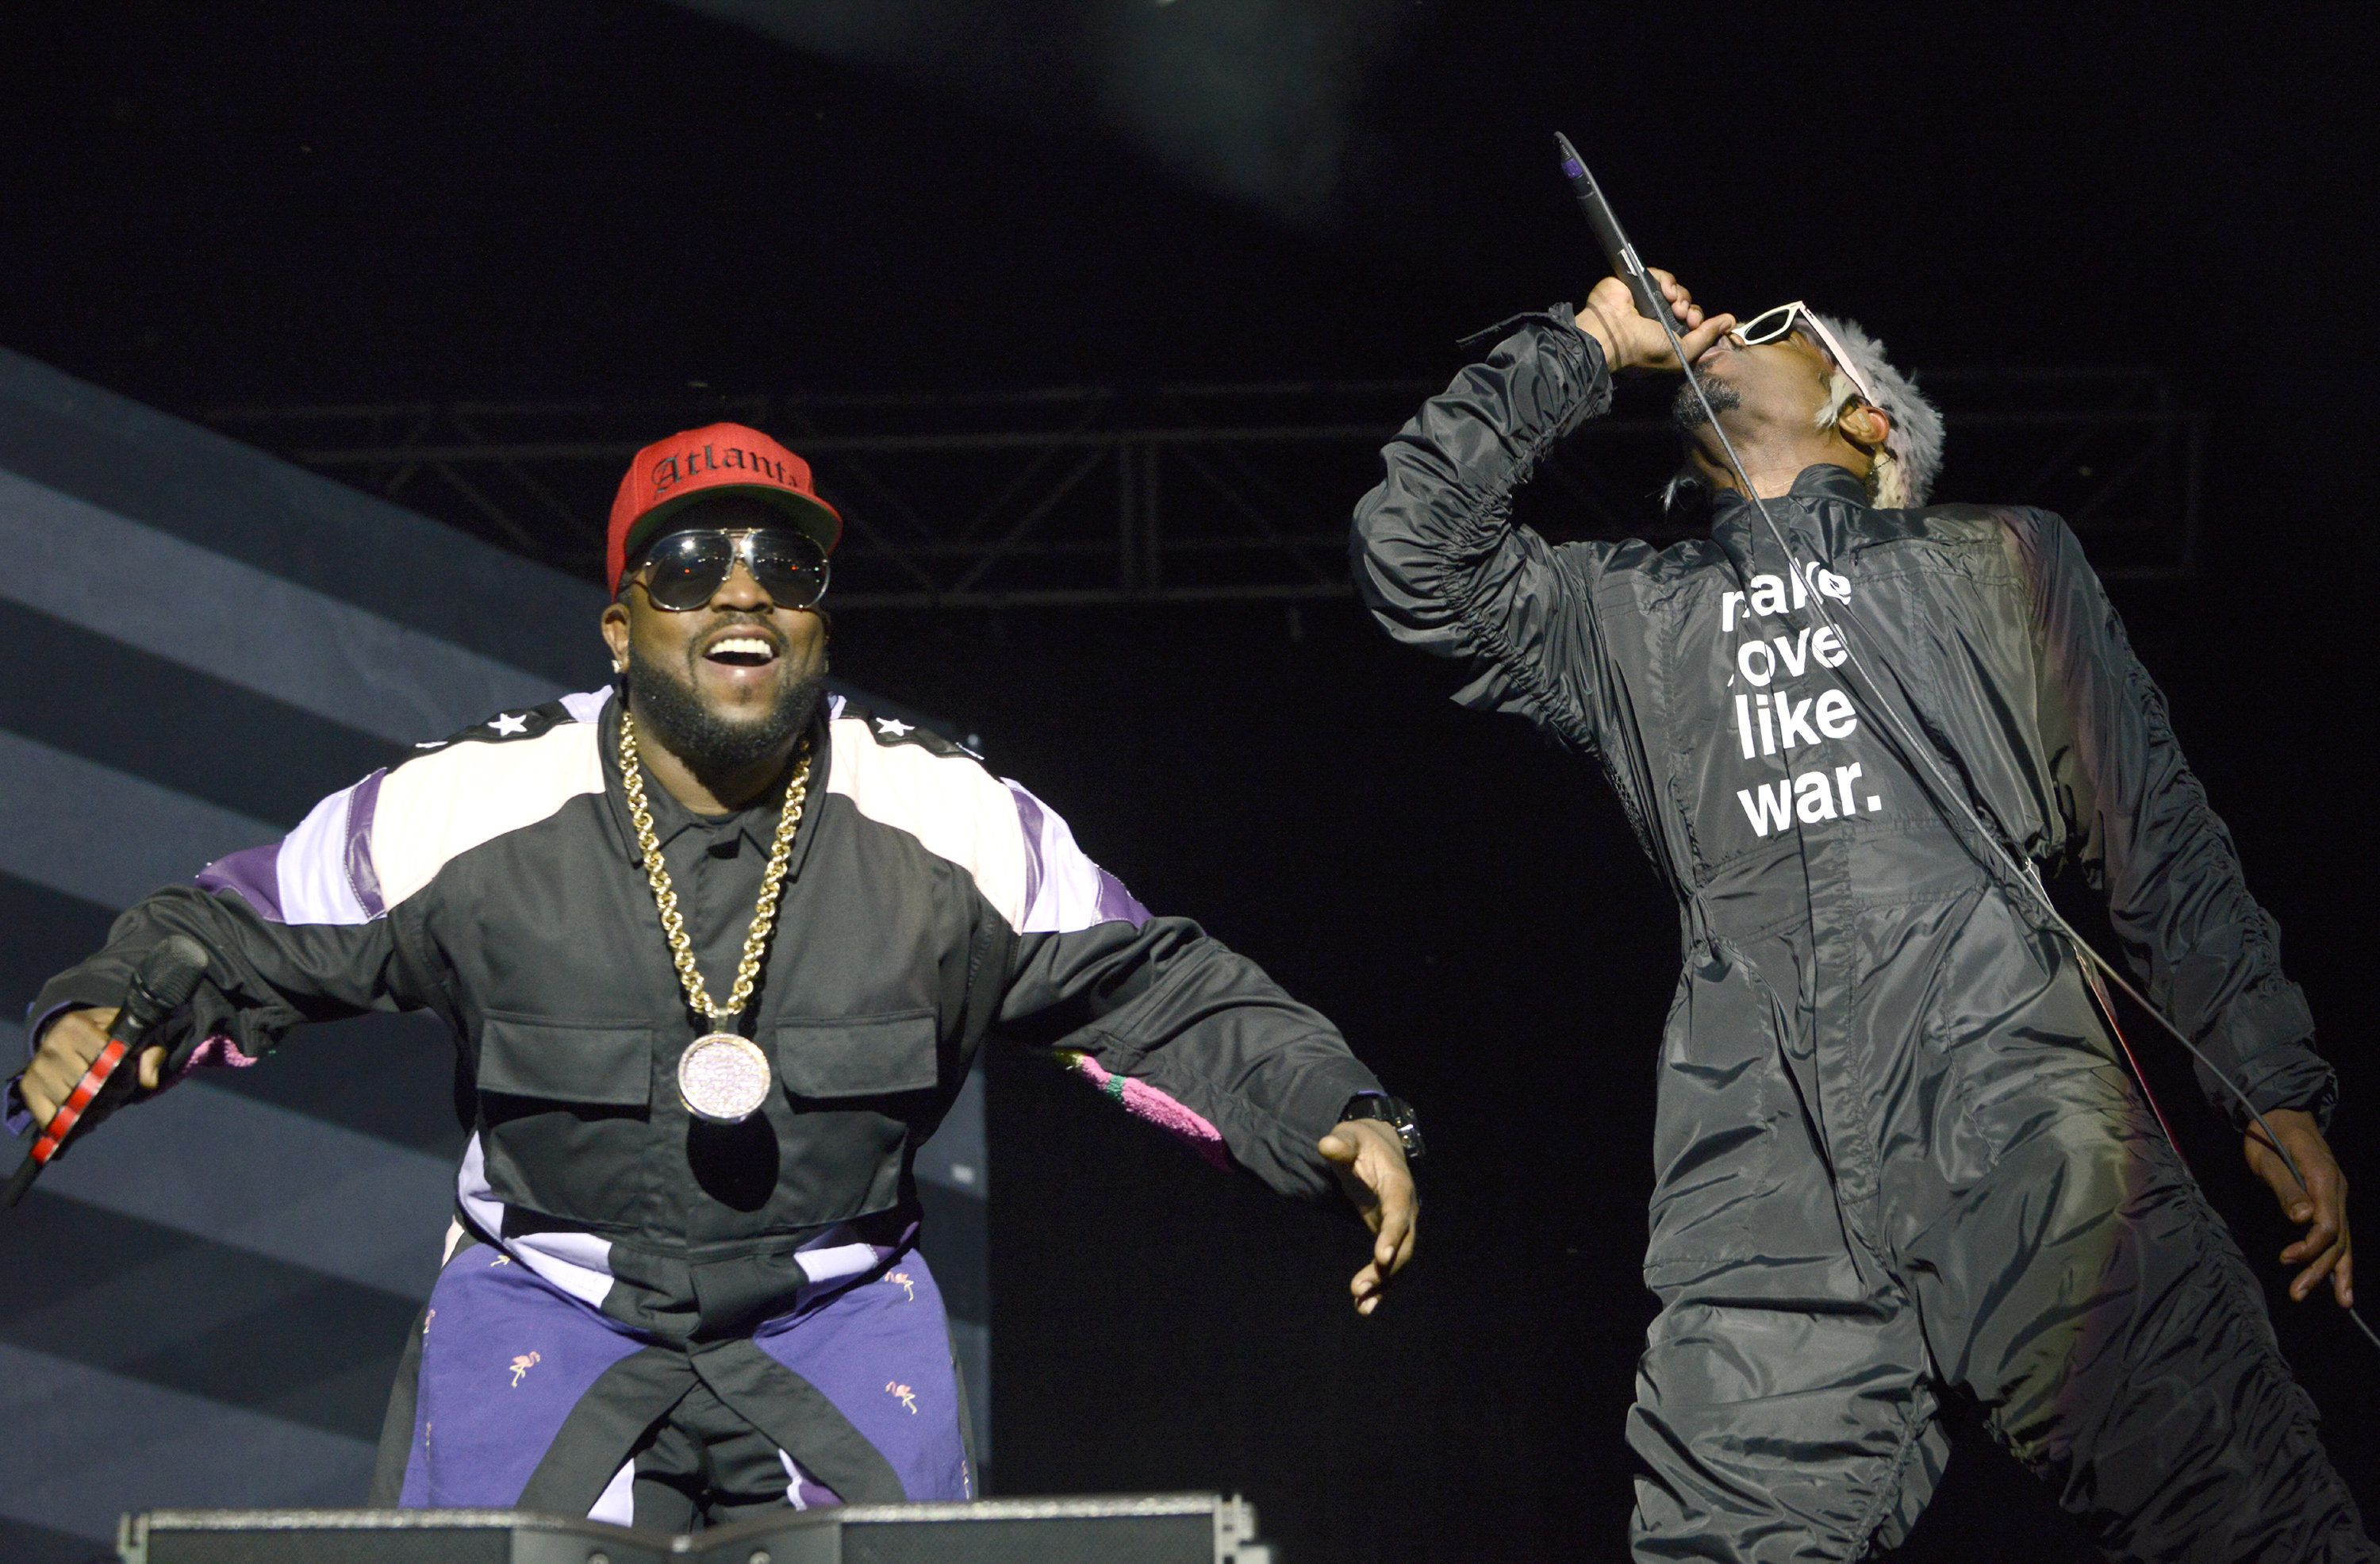 AUSTIN, TX - OCTOBER 03:  Big Boi (L) and Andre 3000 of Outkast perform during the Austin City Limits Music Festival at Zilker Park on October 3, 2014 in Austin, Texas.  (Photo by Tim Mosenfelder/Getty Images)